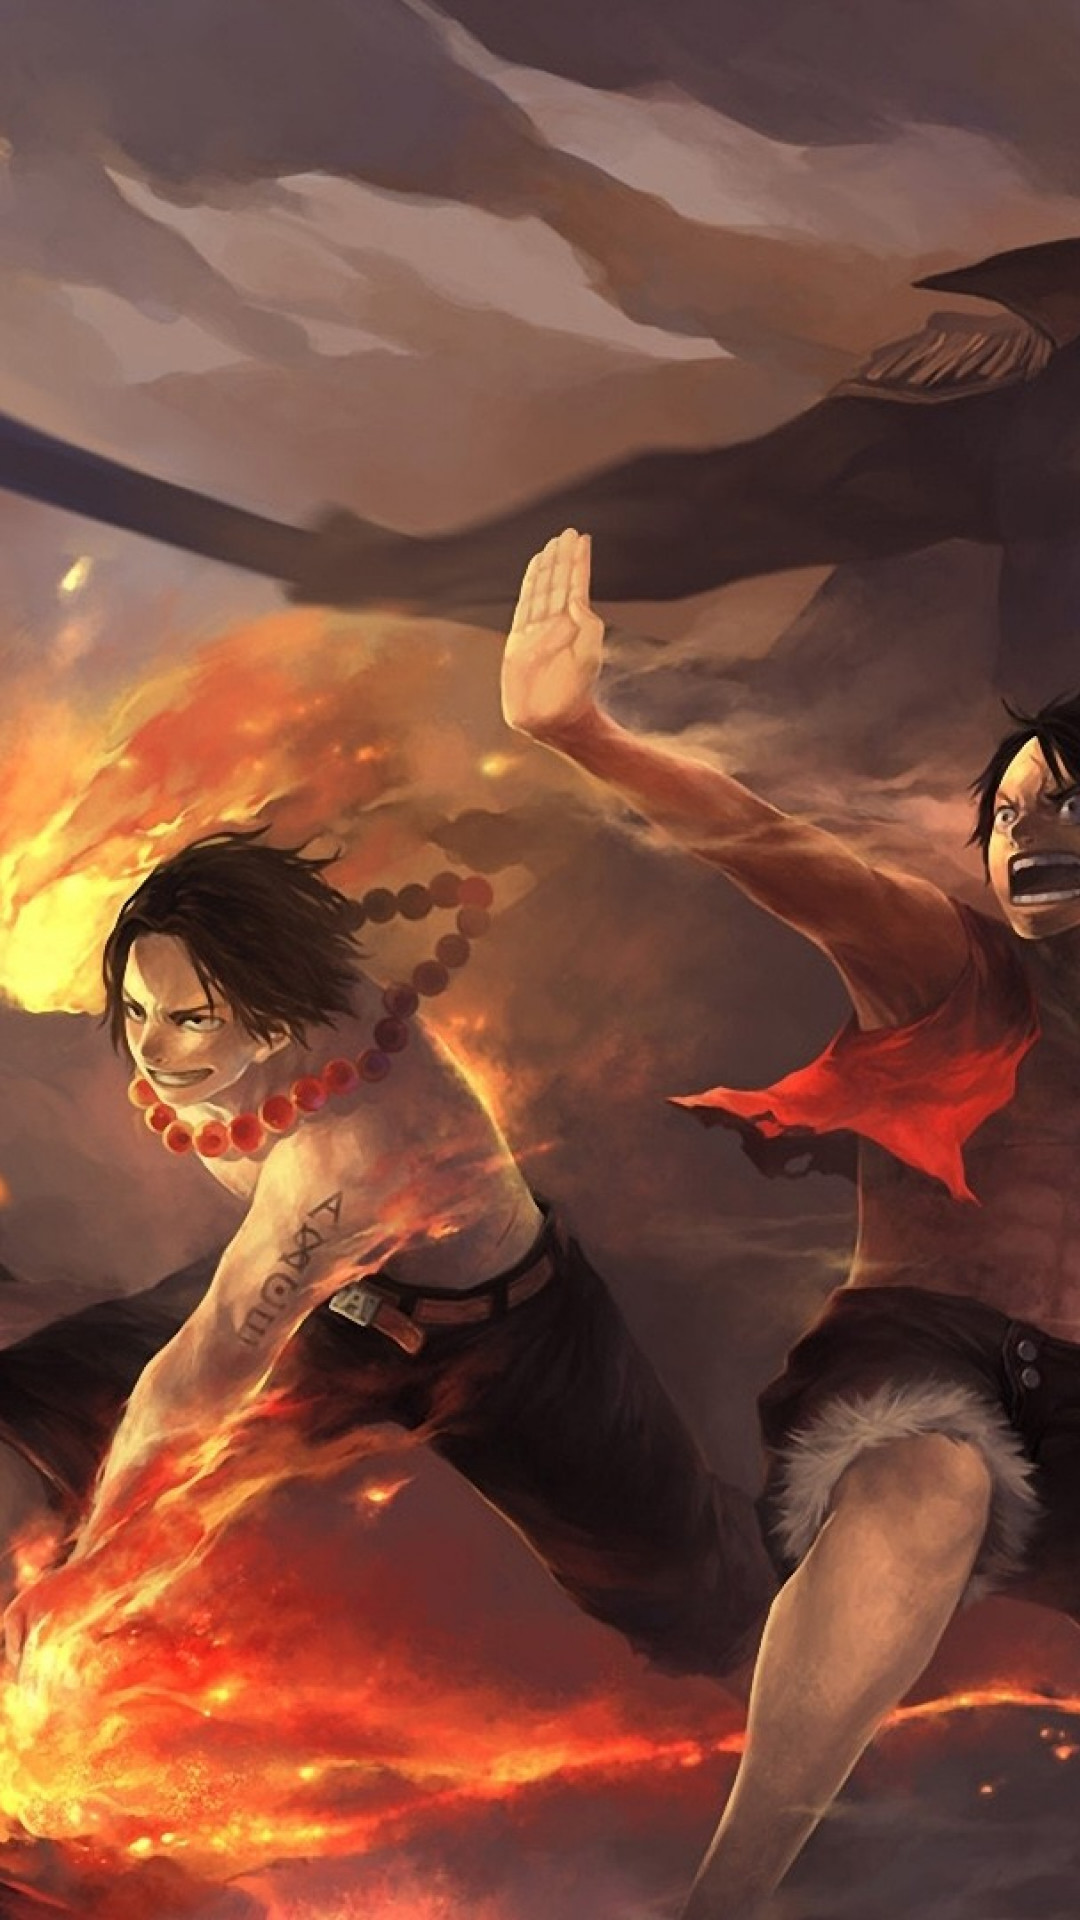 HD Wallpaper One Piece Ace Luffy iPhone 6 Plus – Wallpaper .